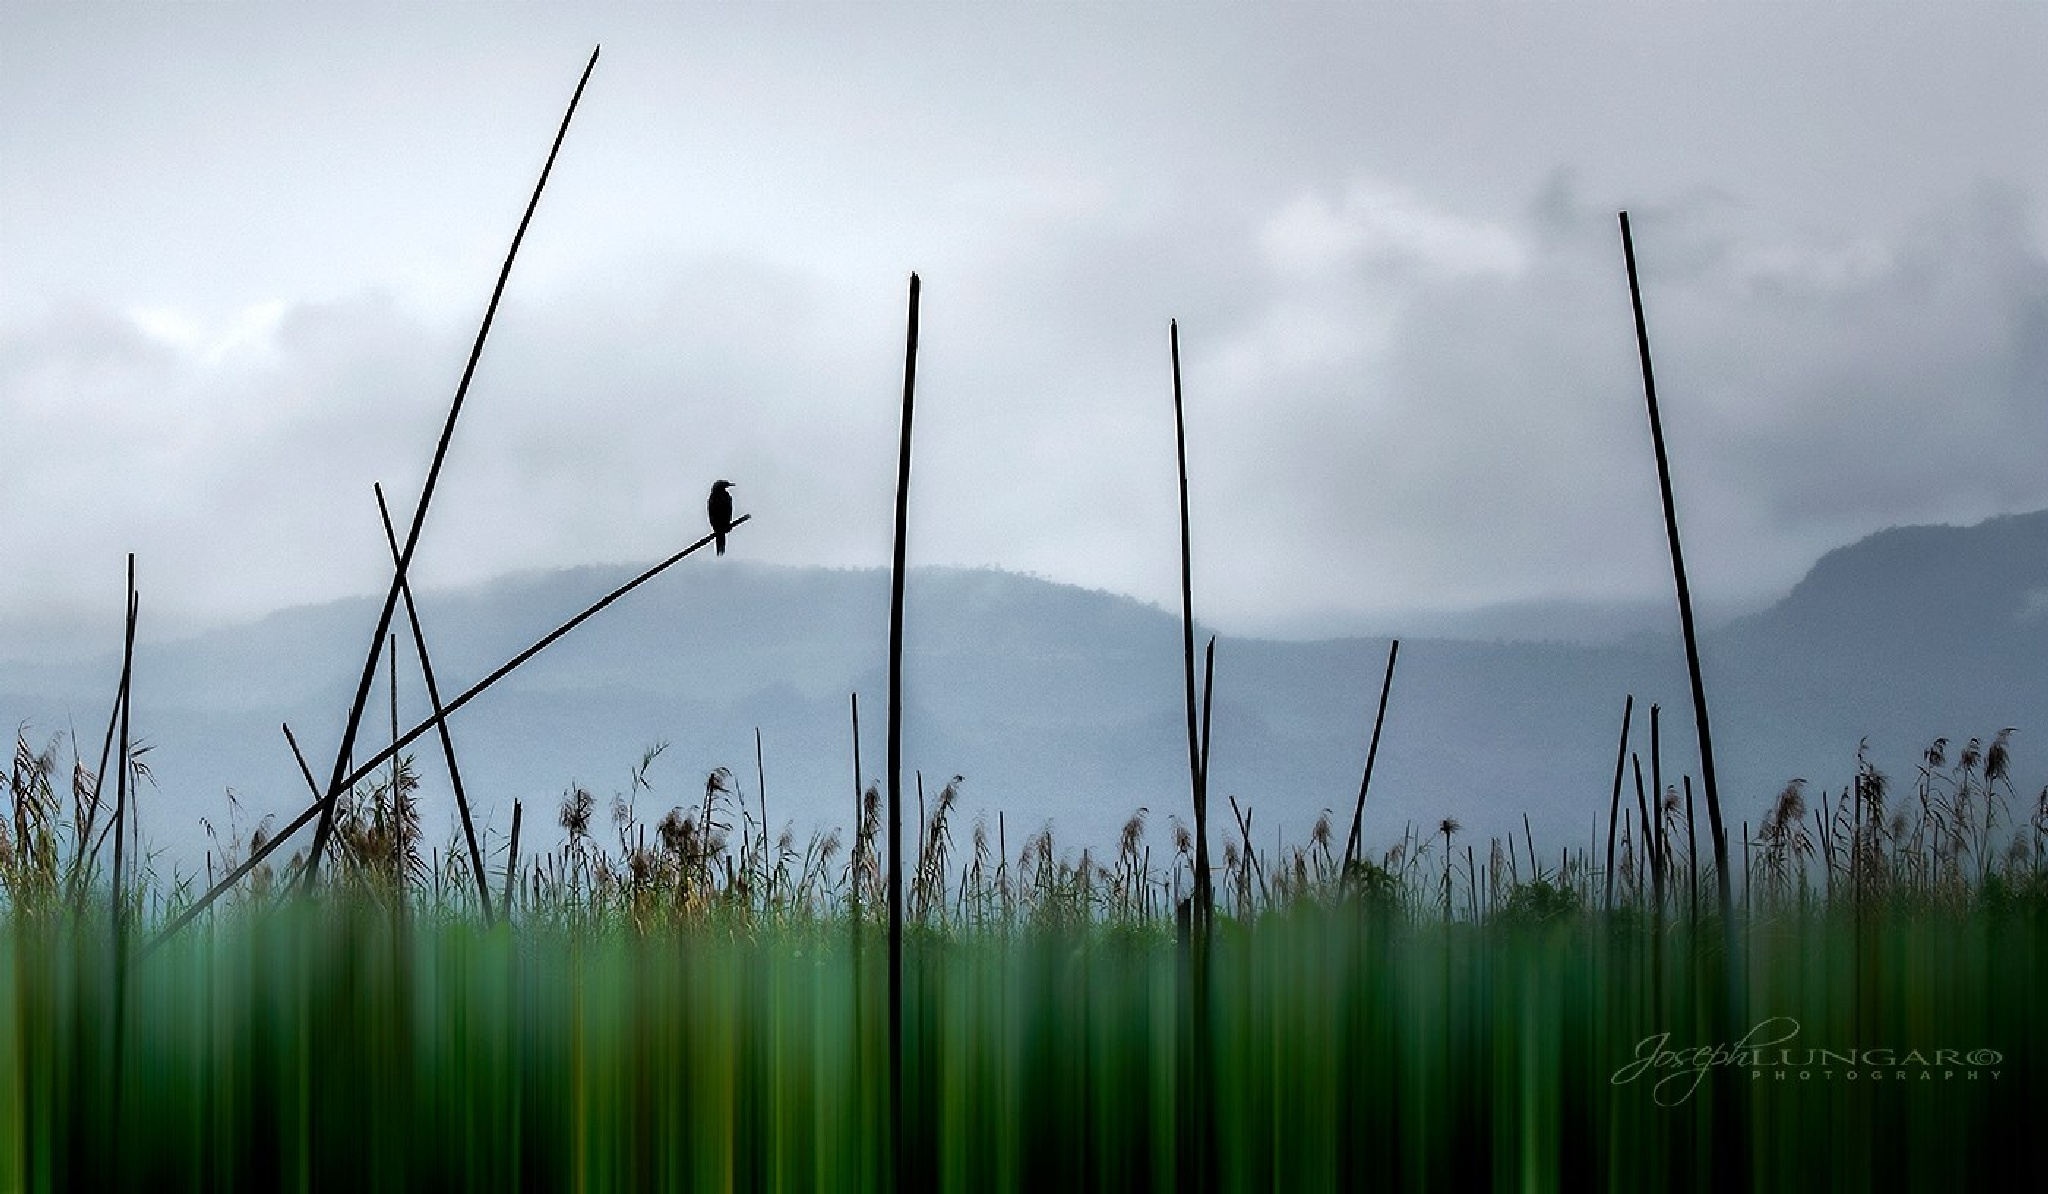 Floating Fields by lungaro1